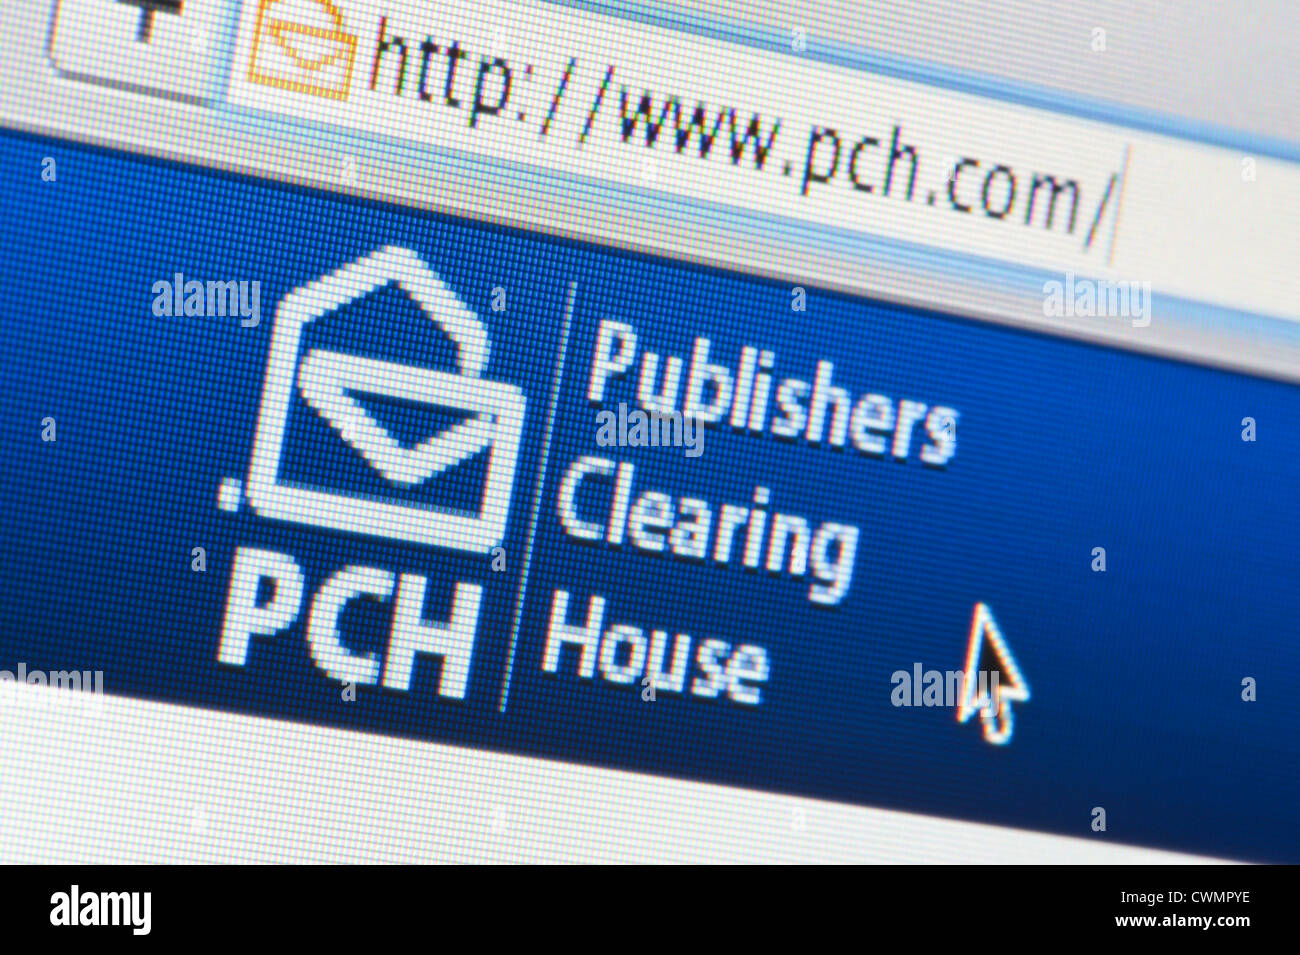 Publishers Stock Photos & Publishers Stock Images - Alamy